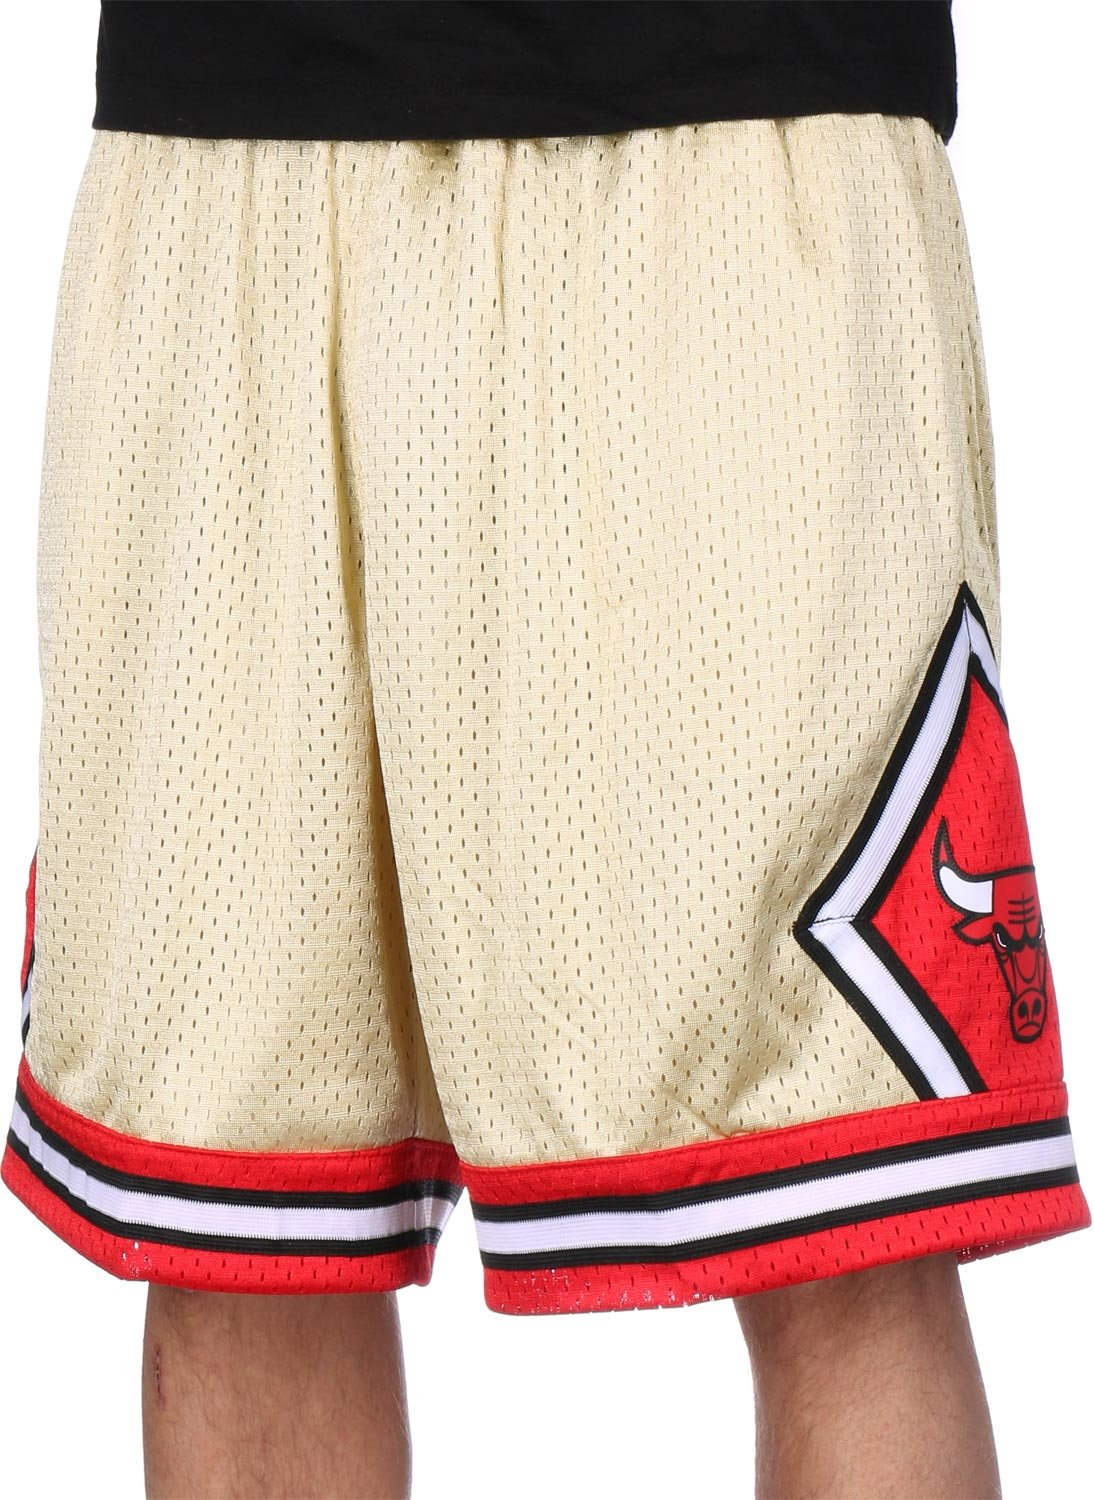 Mitchell & Ness Chicago Bulls 1997-98 Gold Collection NBA Shorts XXL